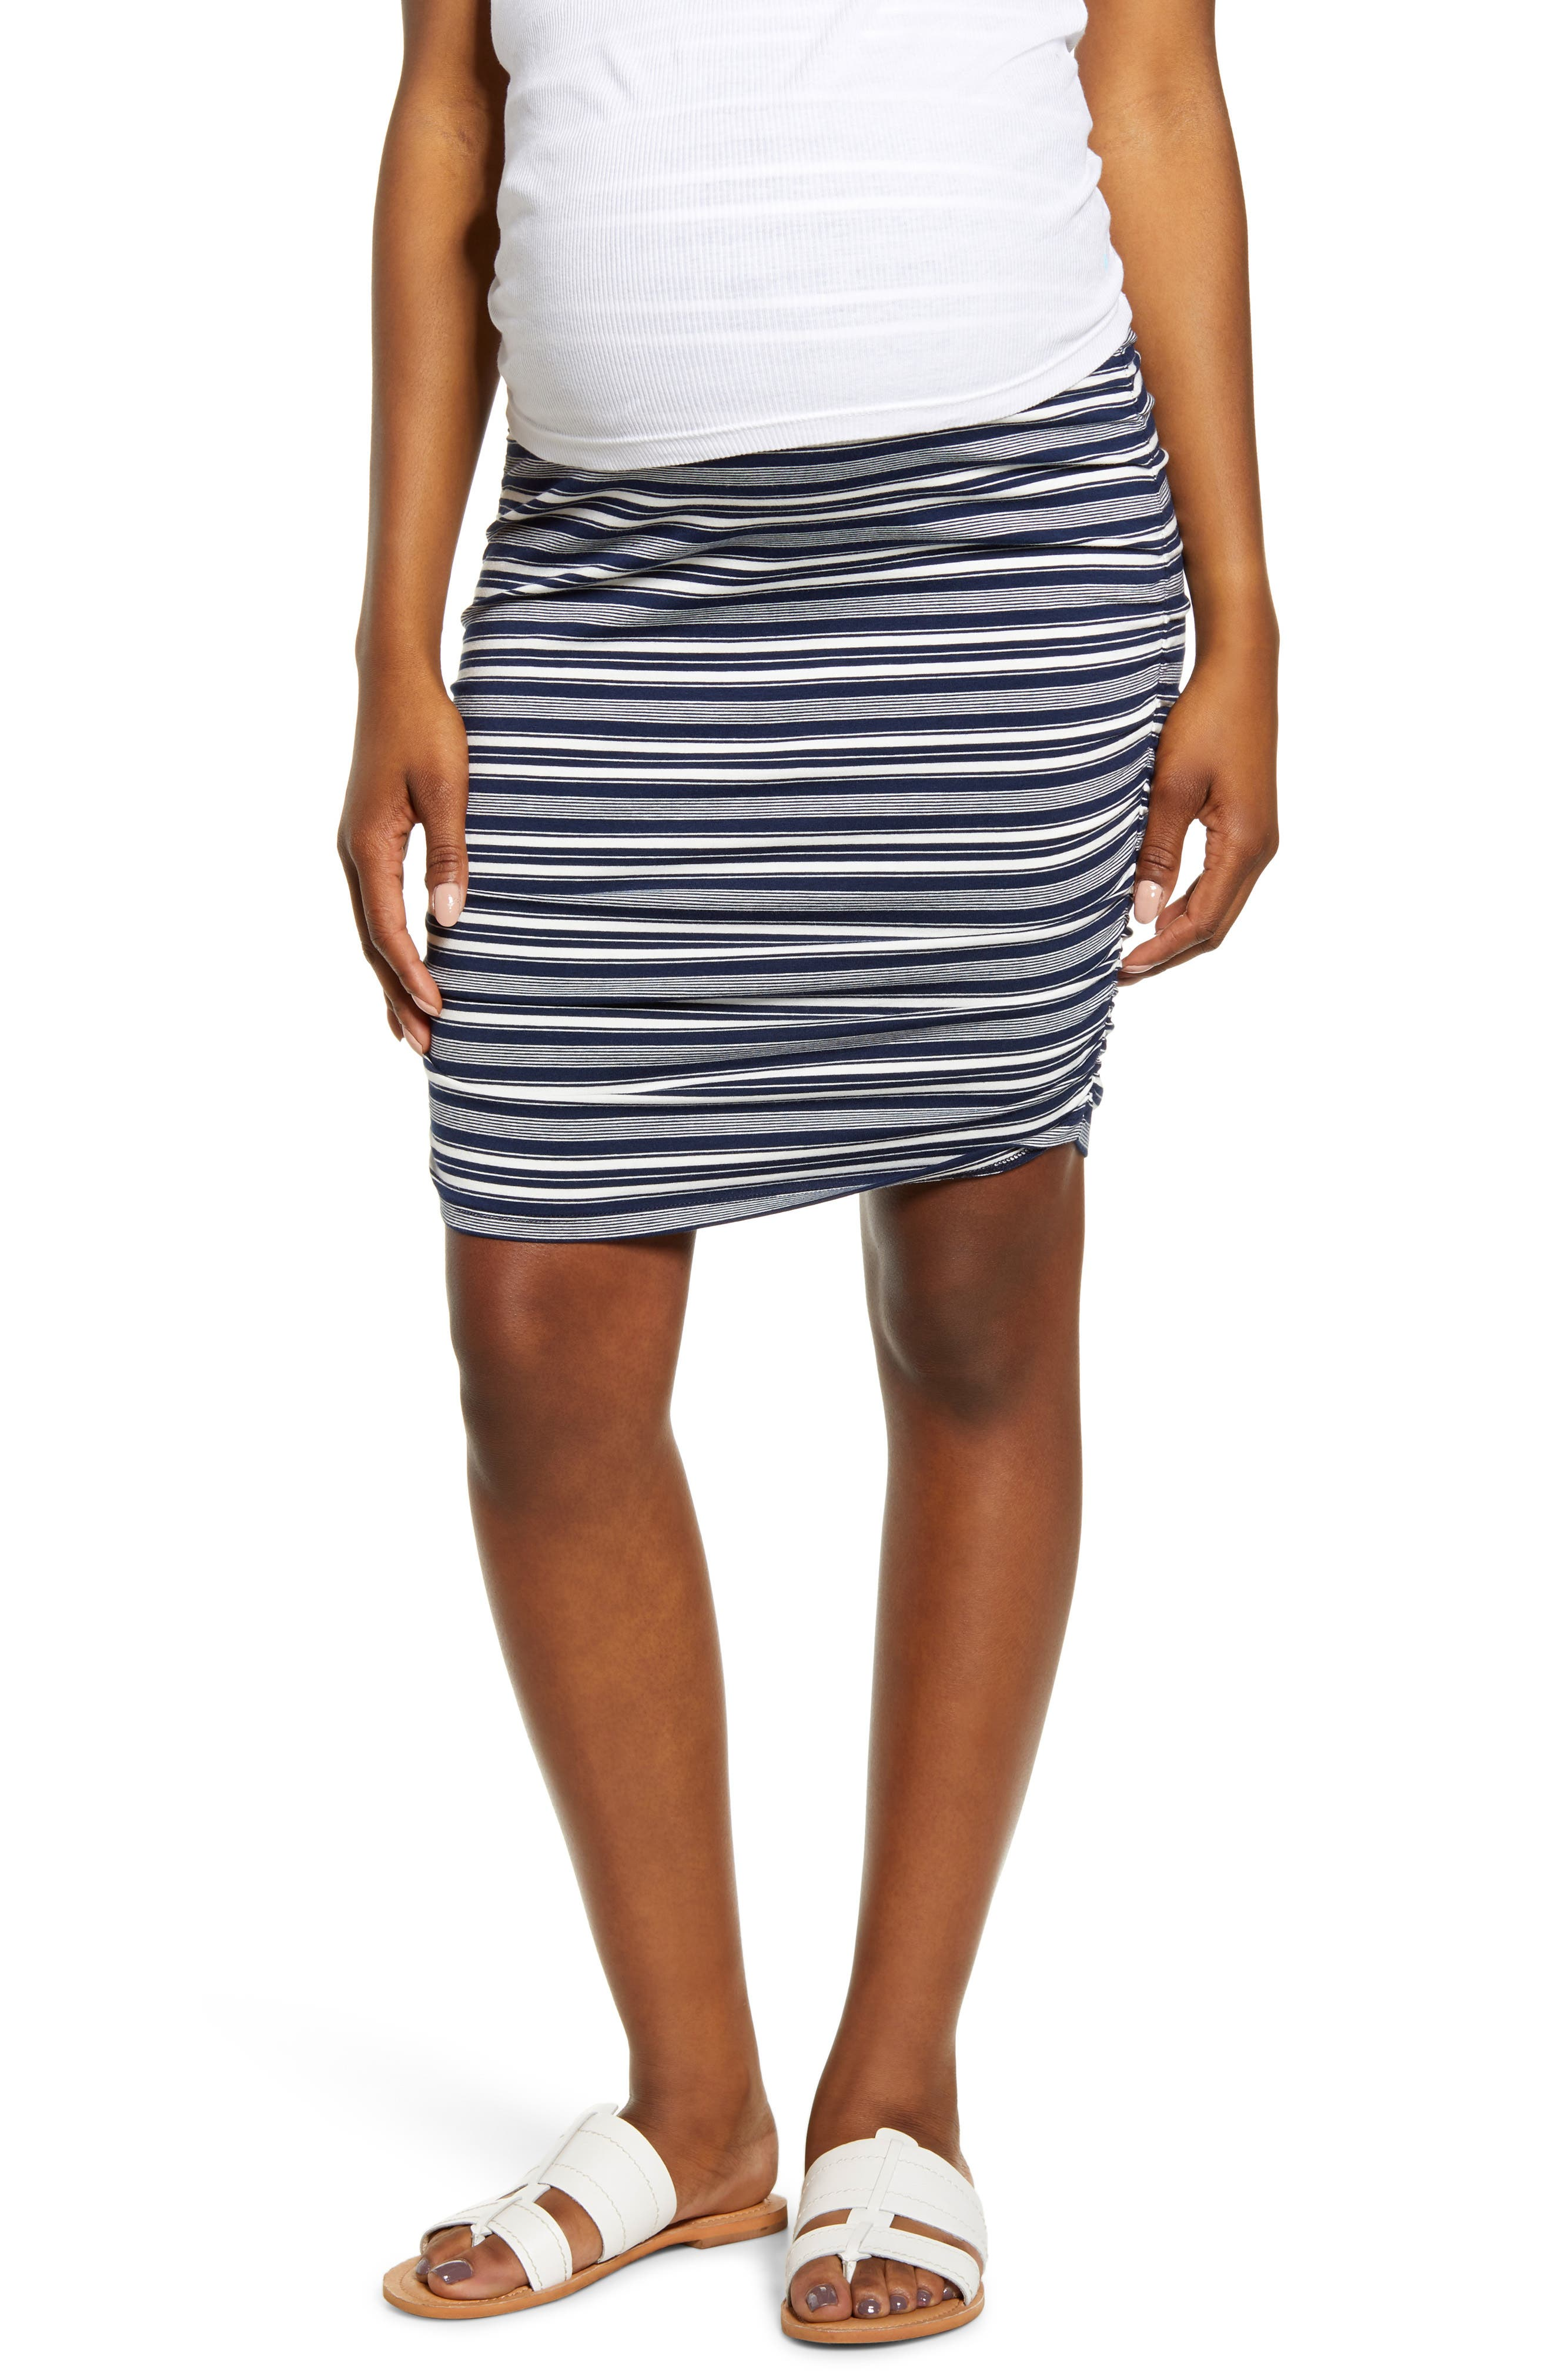 Over The Belly Ruched Maternity Skirt